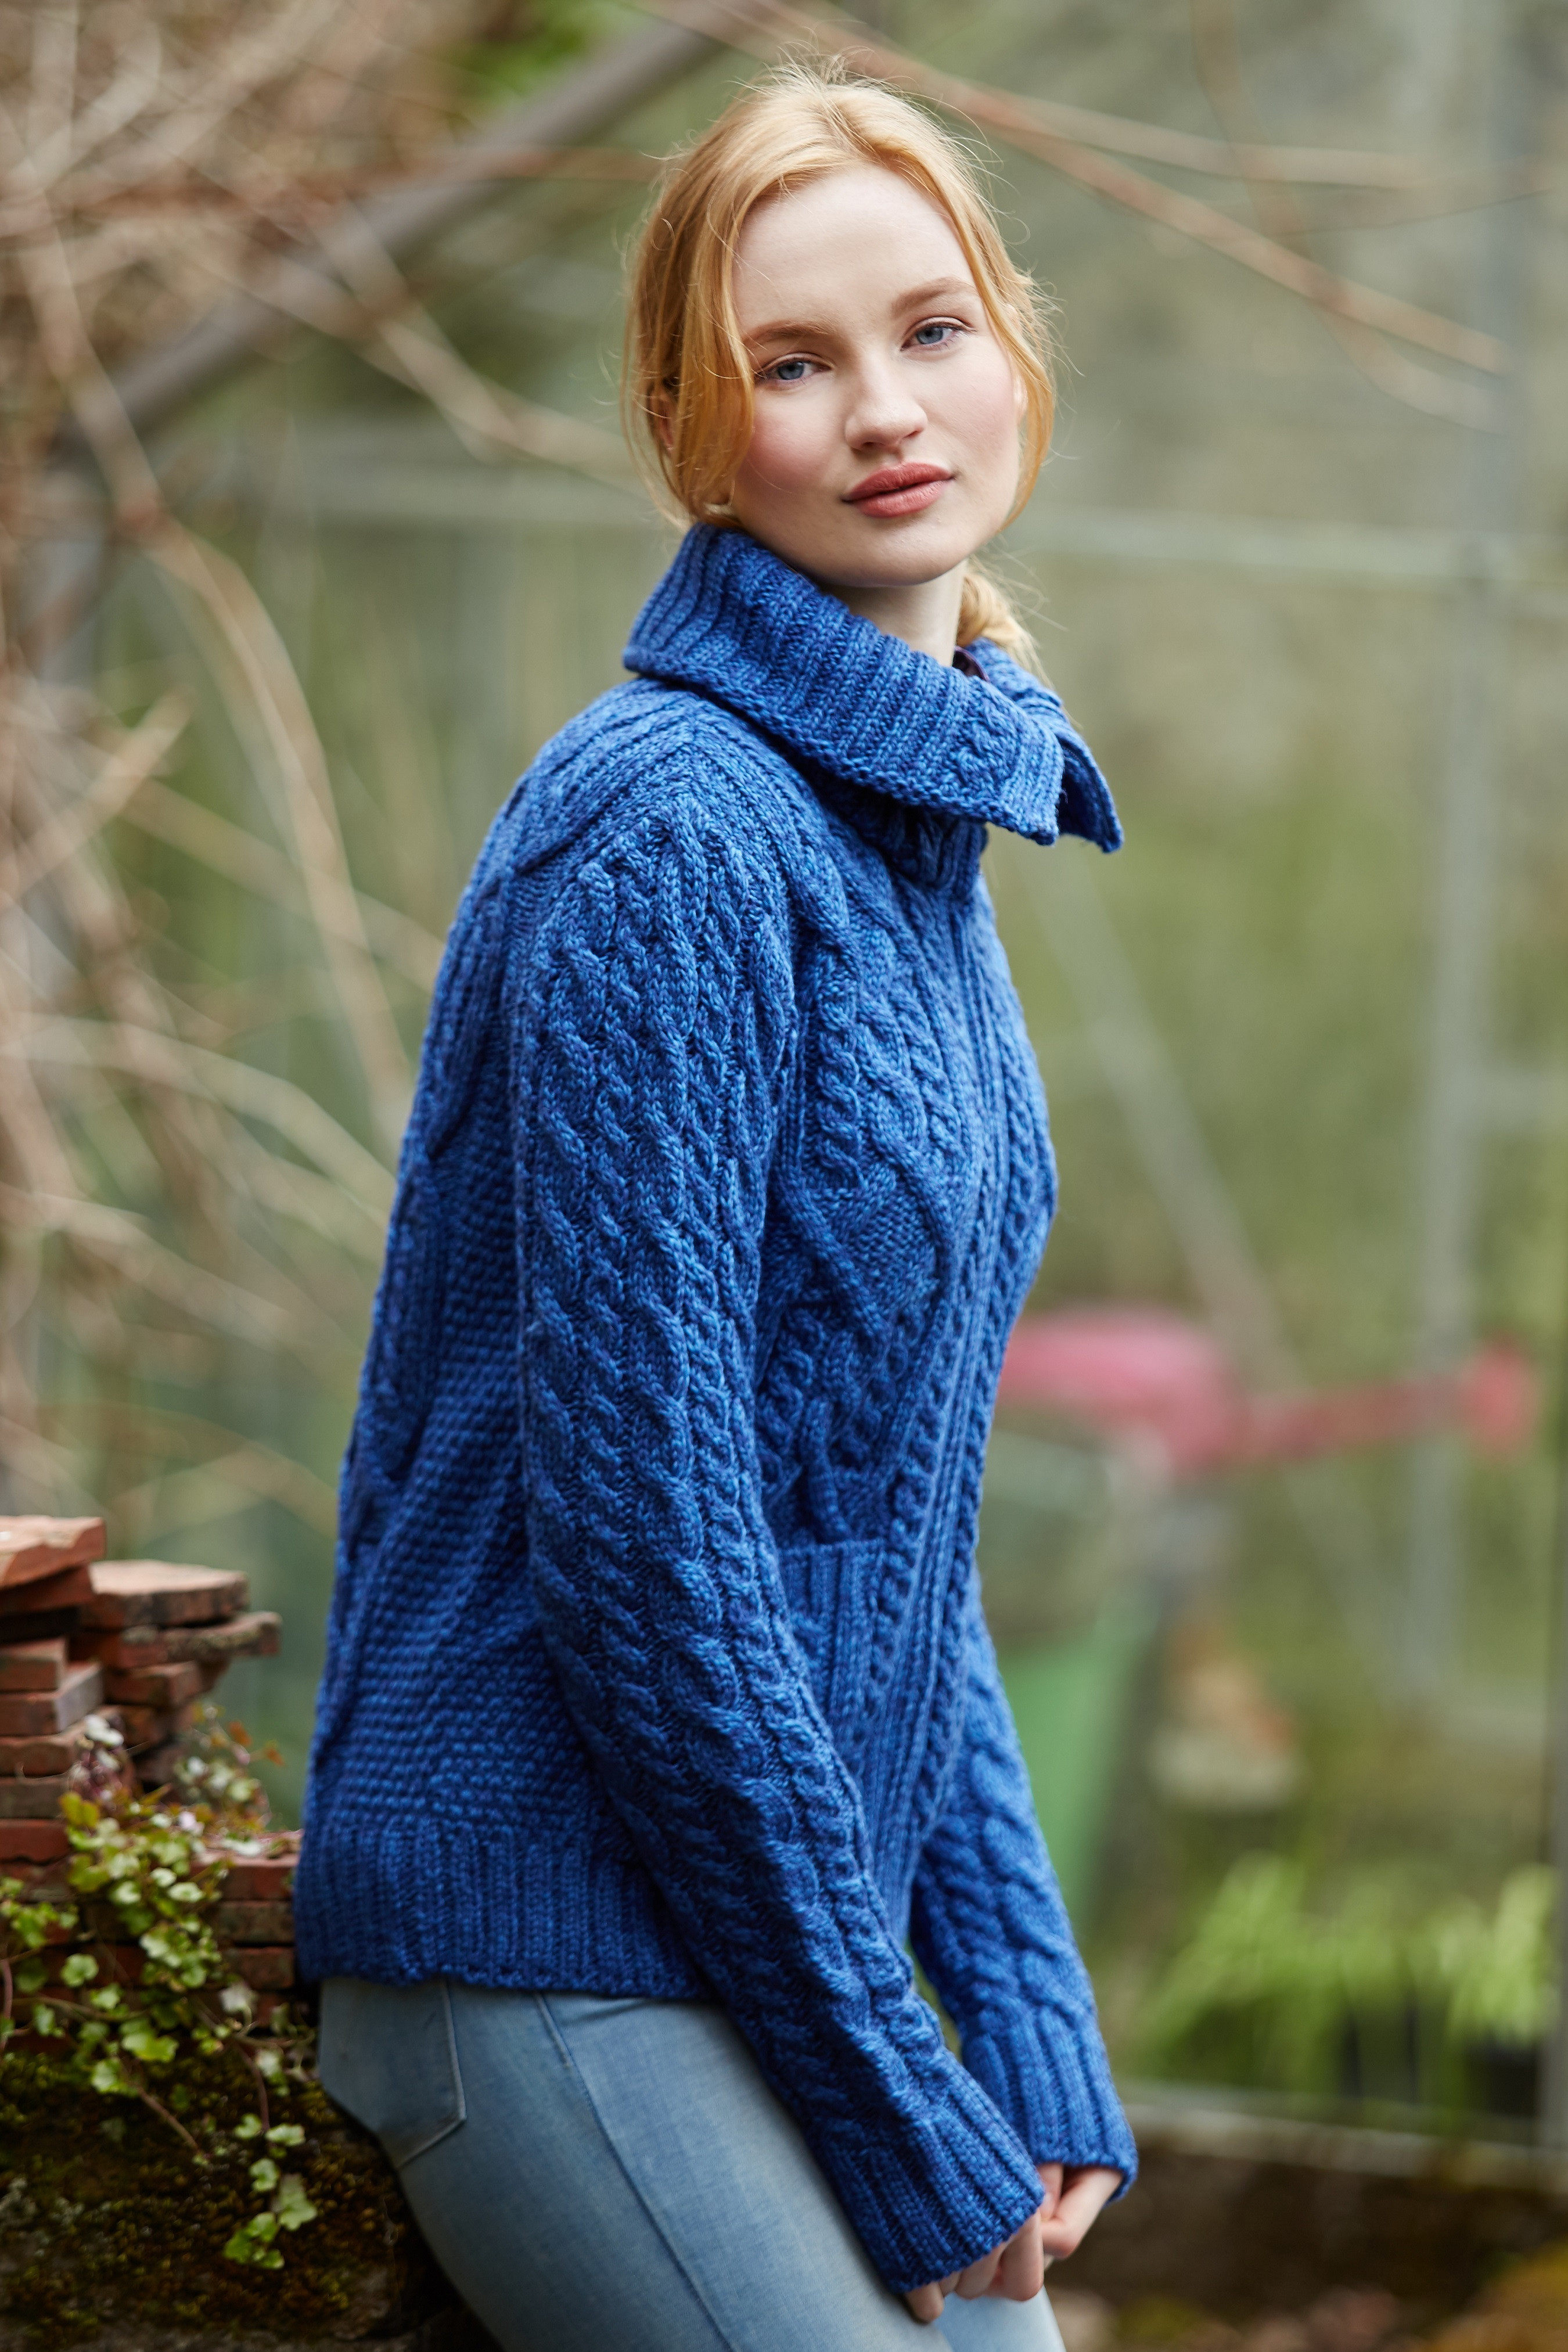 Best Of Irish Merino Wool La S Zip Aran Sweater with Pockets Irish Aran Sweater Of Fresh 40 Pics Irish Aran Sweater